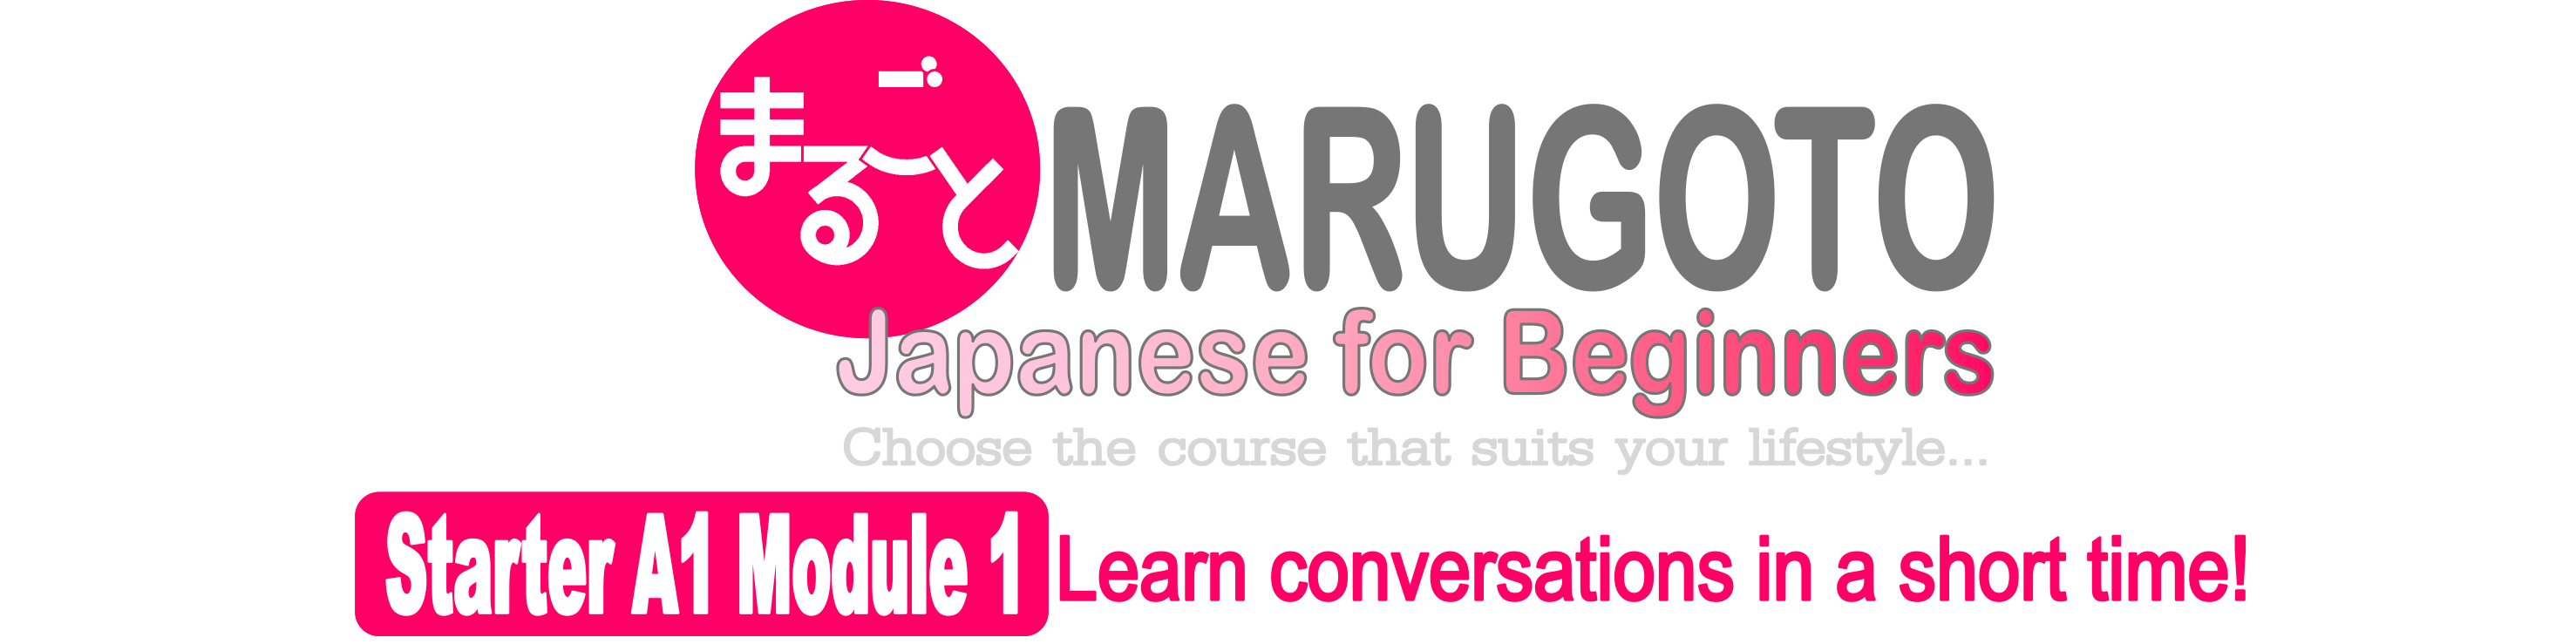 MARUGOTO Japanese for Beginners  Starter A1 Module 1 – Deadline: May 14 (Tue.)